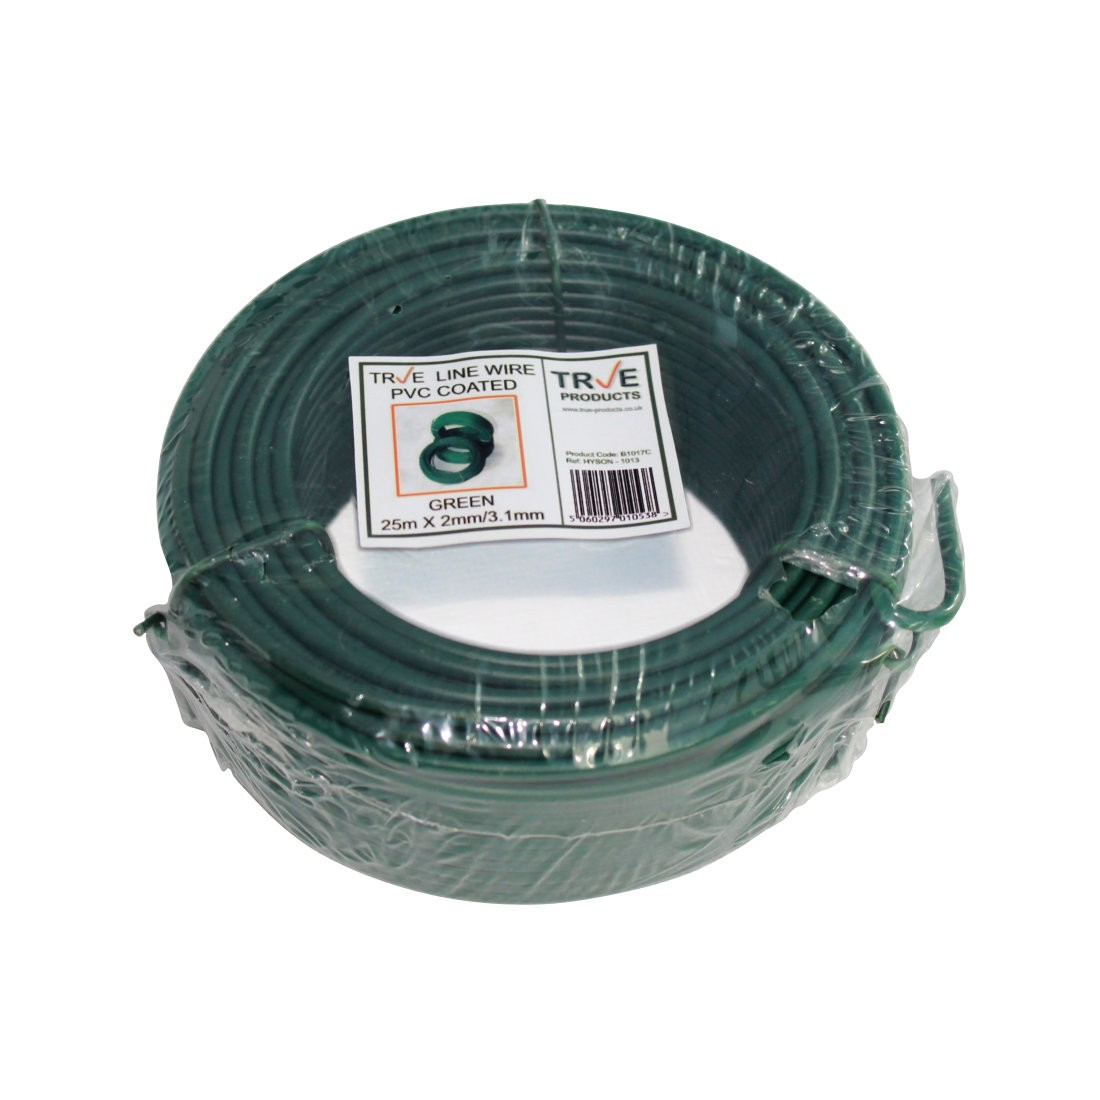 Galvanised Line Straining Tension Wire - Green PVC Coated